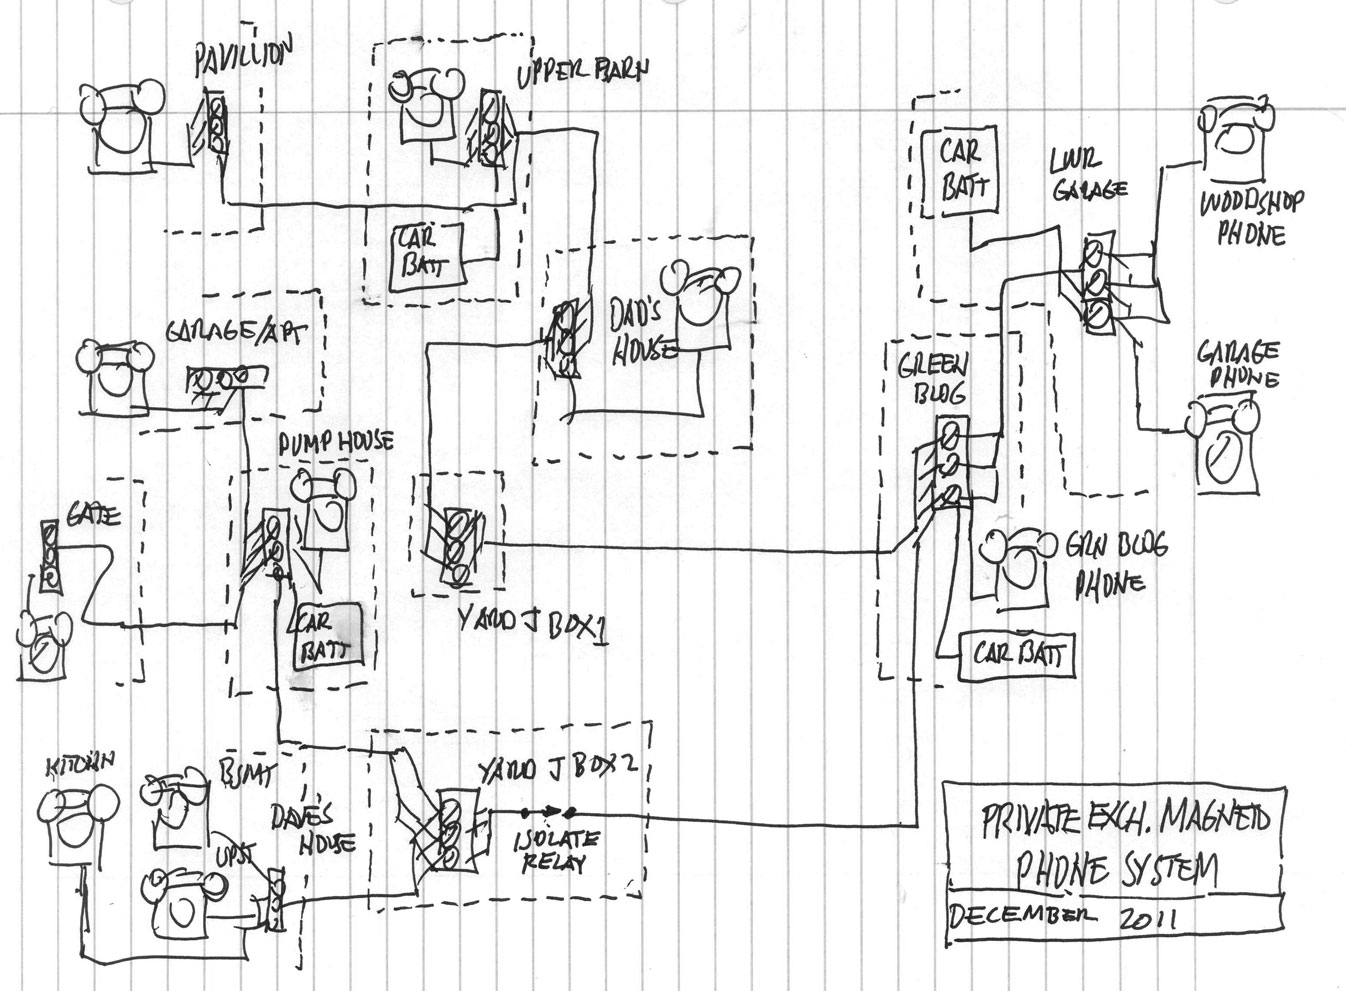 telephone dsl wiring diagram